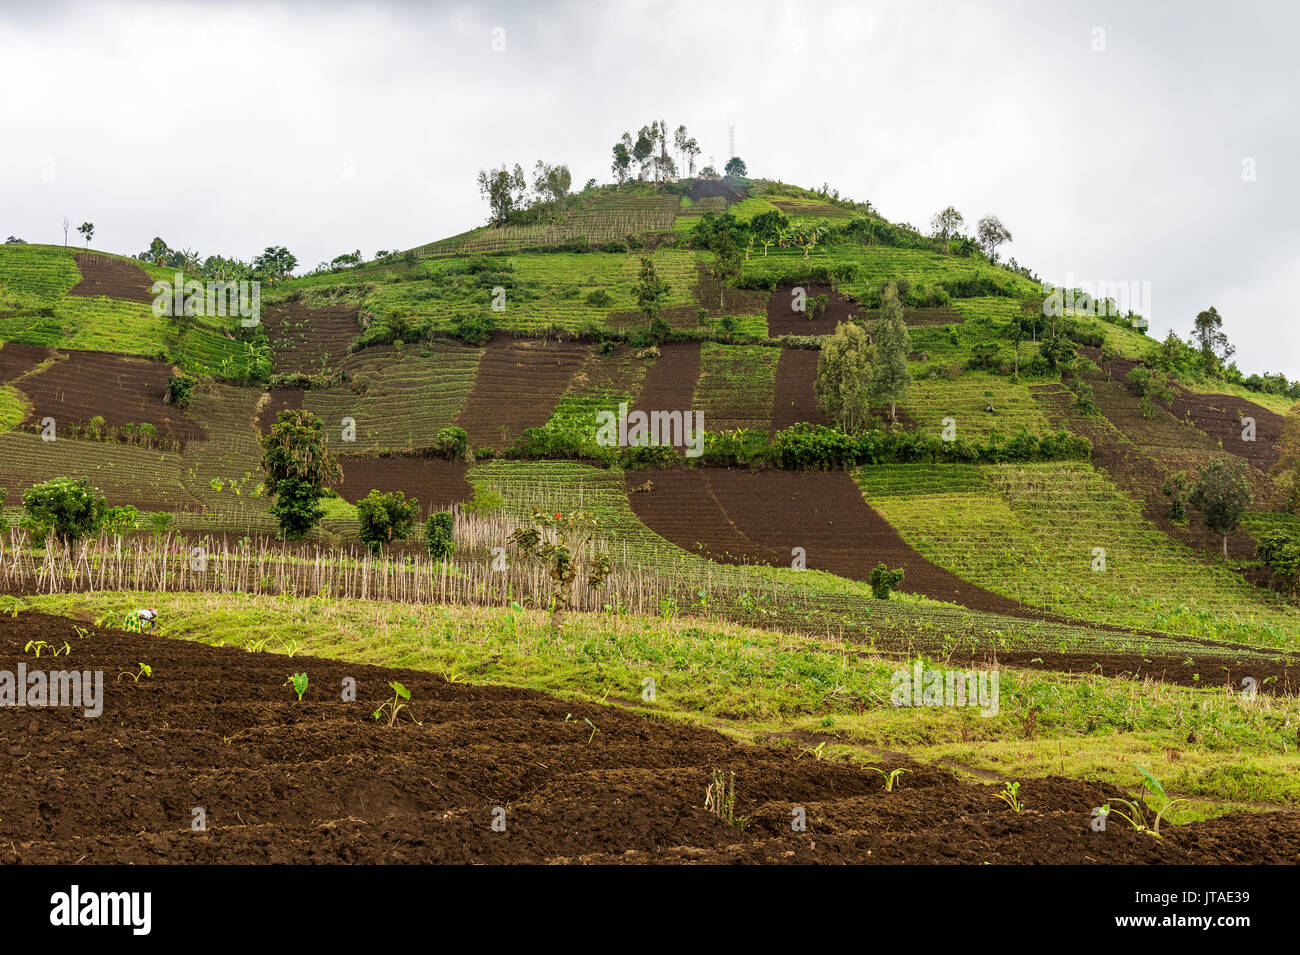 Farmland in the Virunga National Park, Democratic Republic of the Congo, Africa - Stock Image